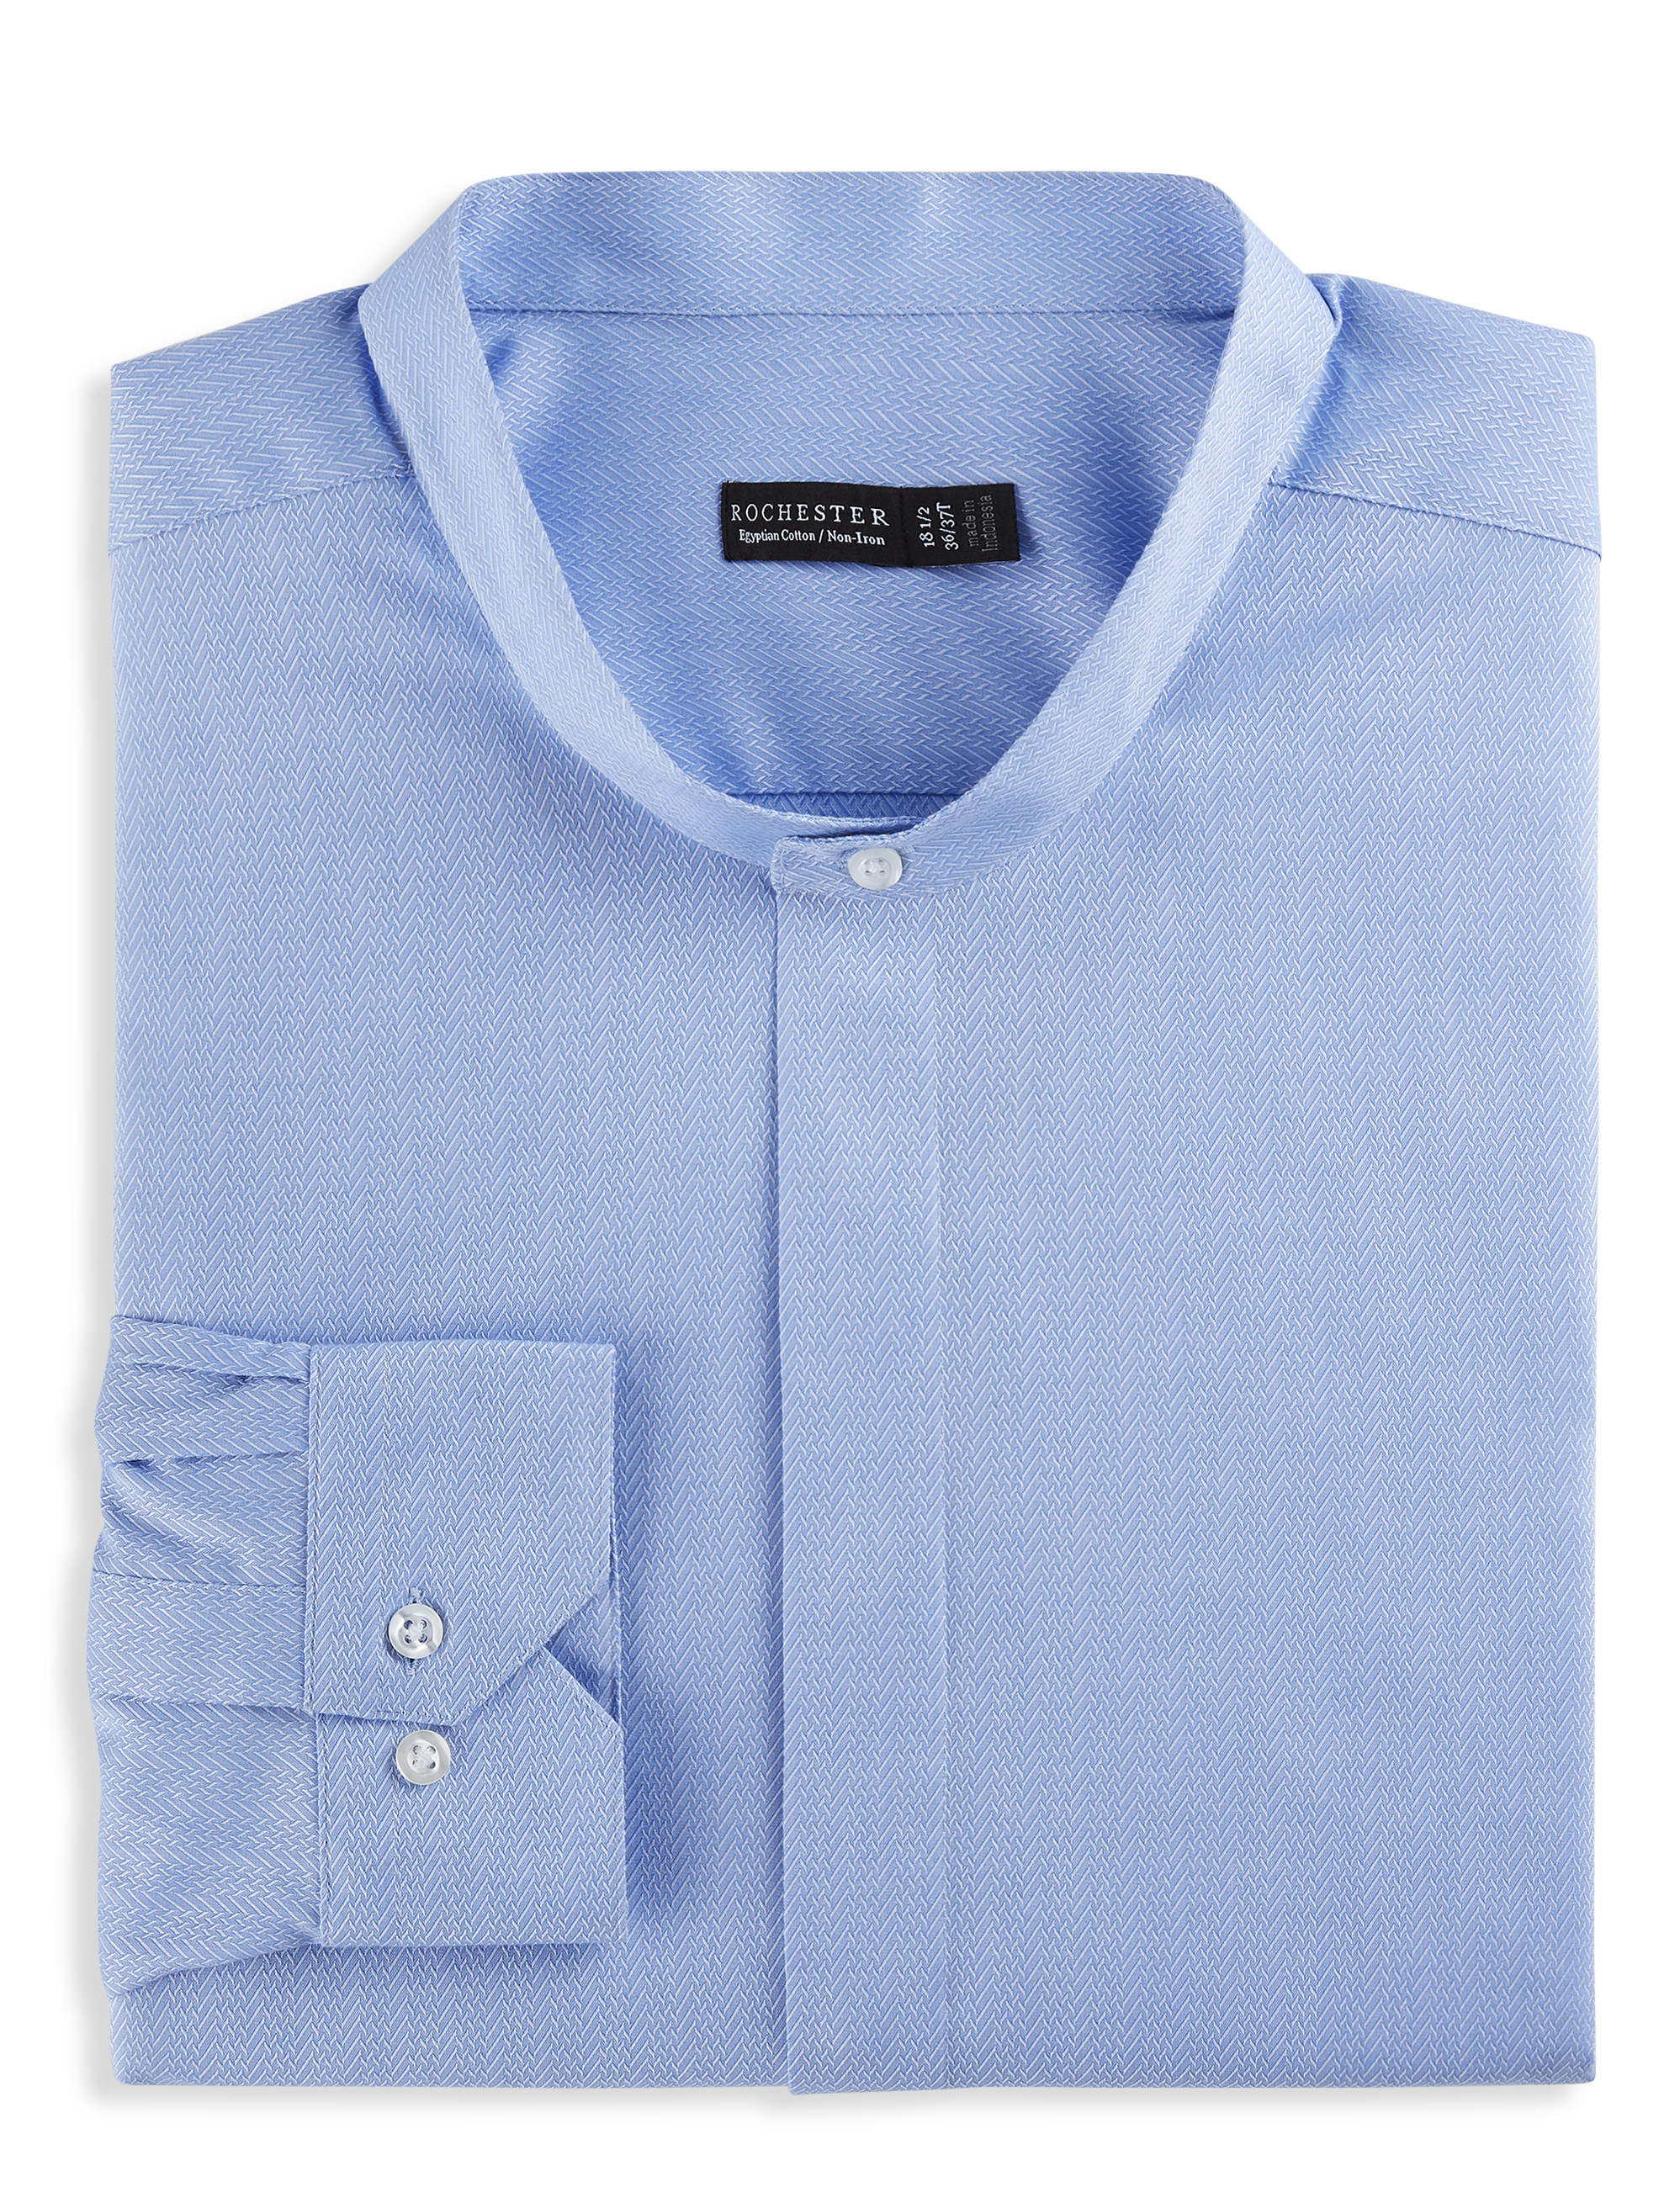 Rochester Mandarin Collar Dress Shirt | Tuggl